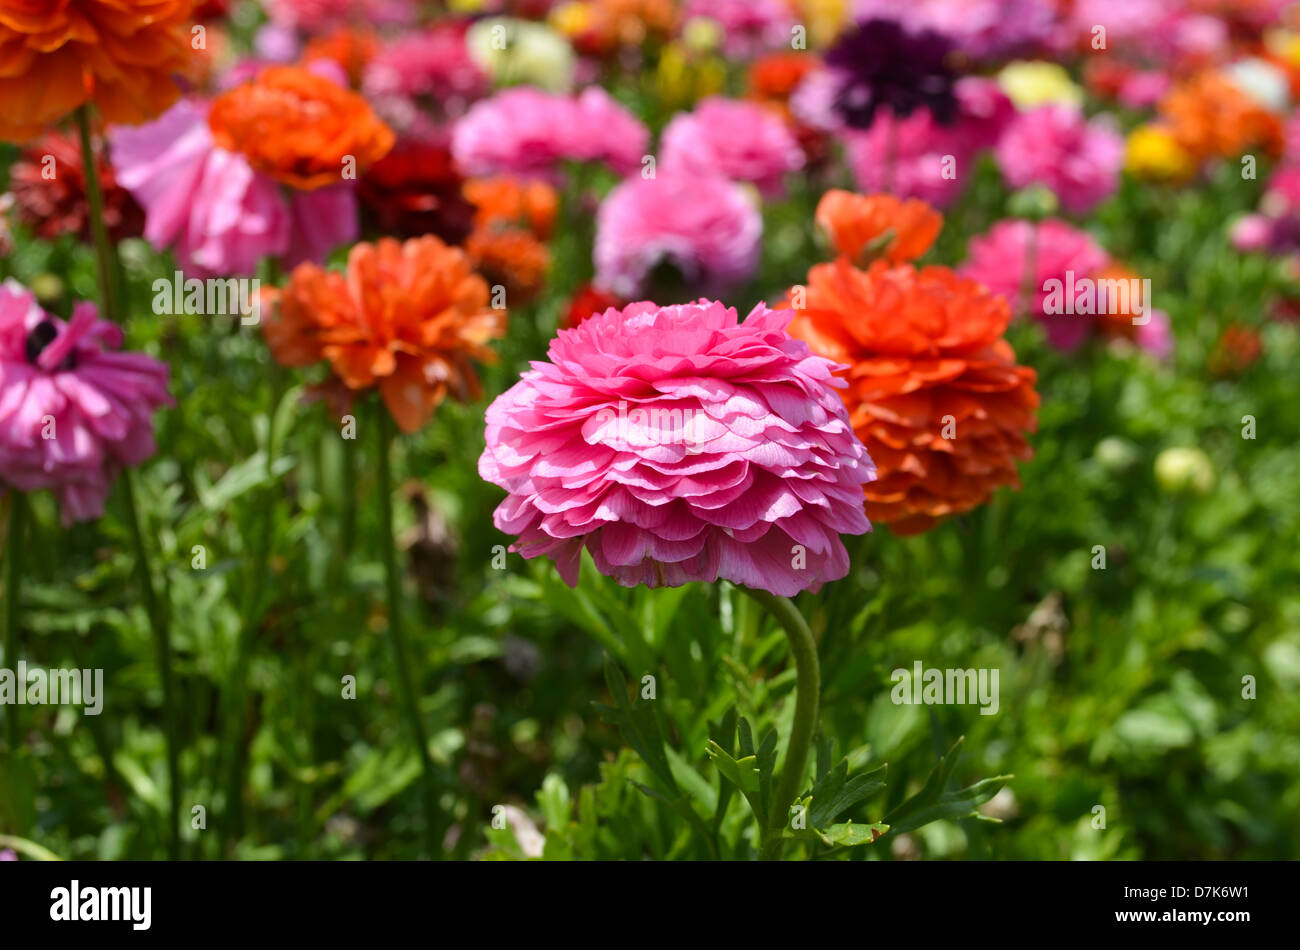 A field of cultivated Buttercup  Ranunculus  flowers Stock Photo     A field of cultivated Buttercup  Ranunculus  flowers